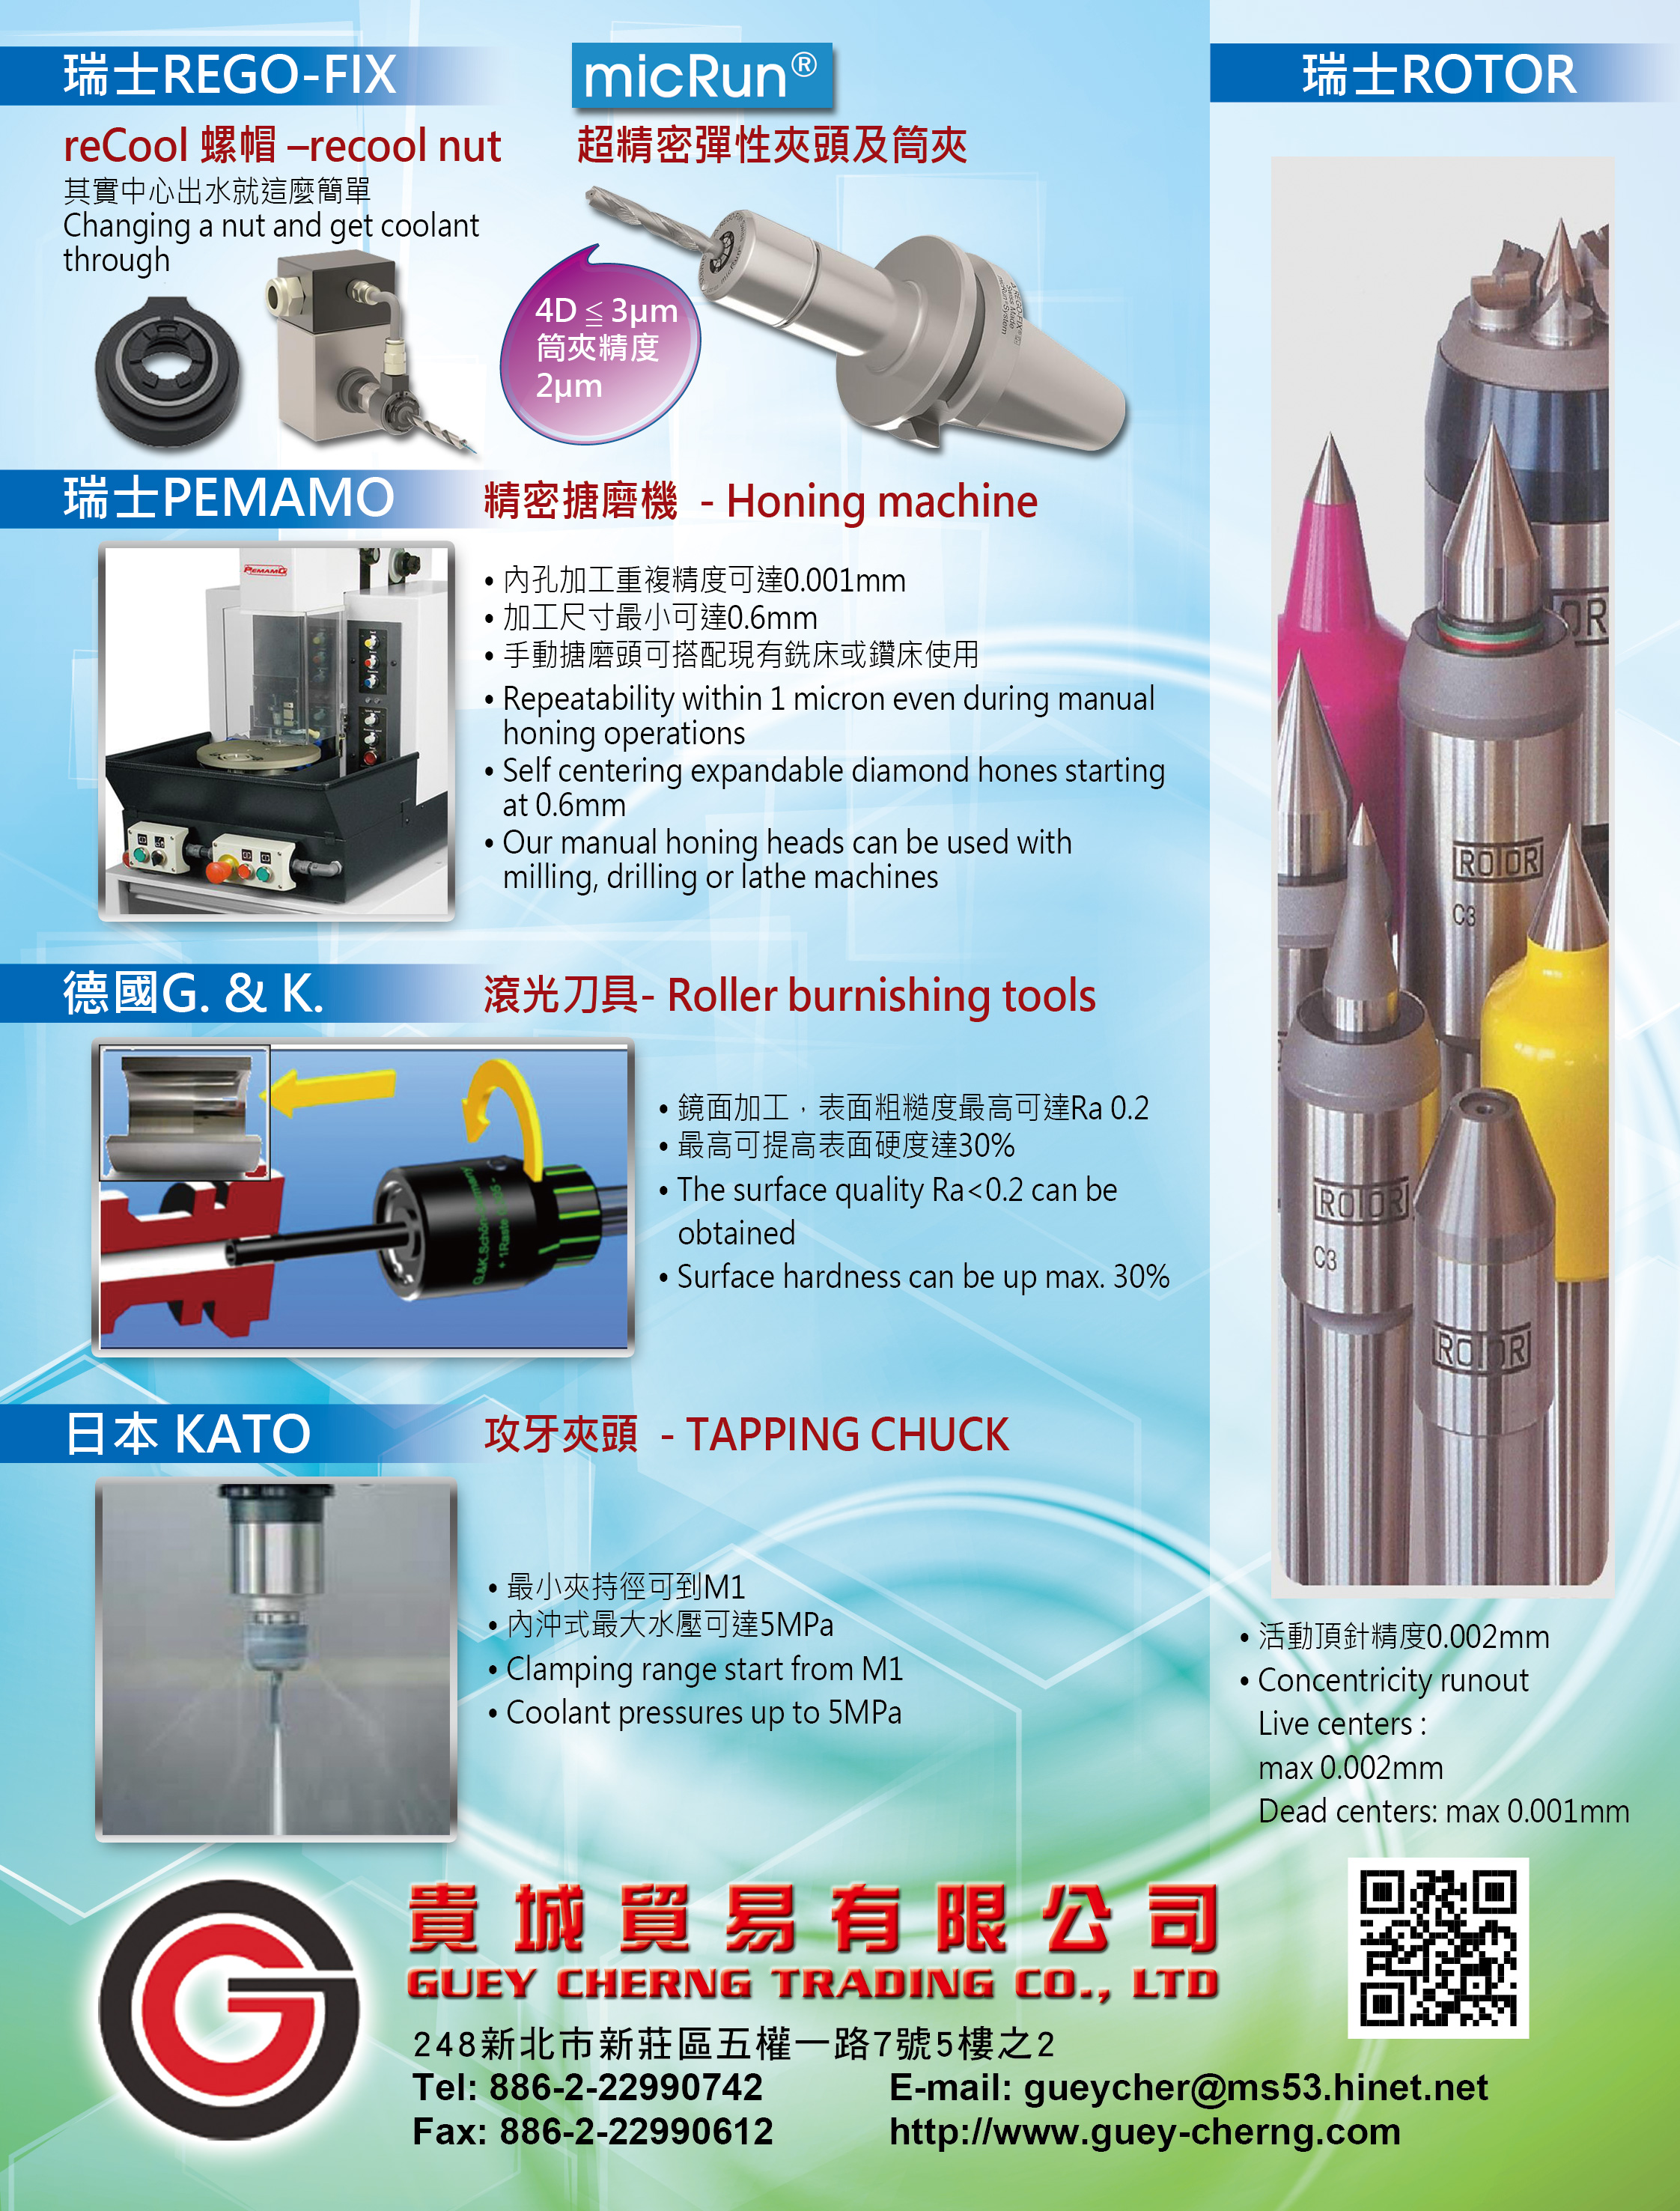 GUEY CHERNG TRADING CO., LTD.